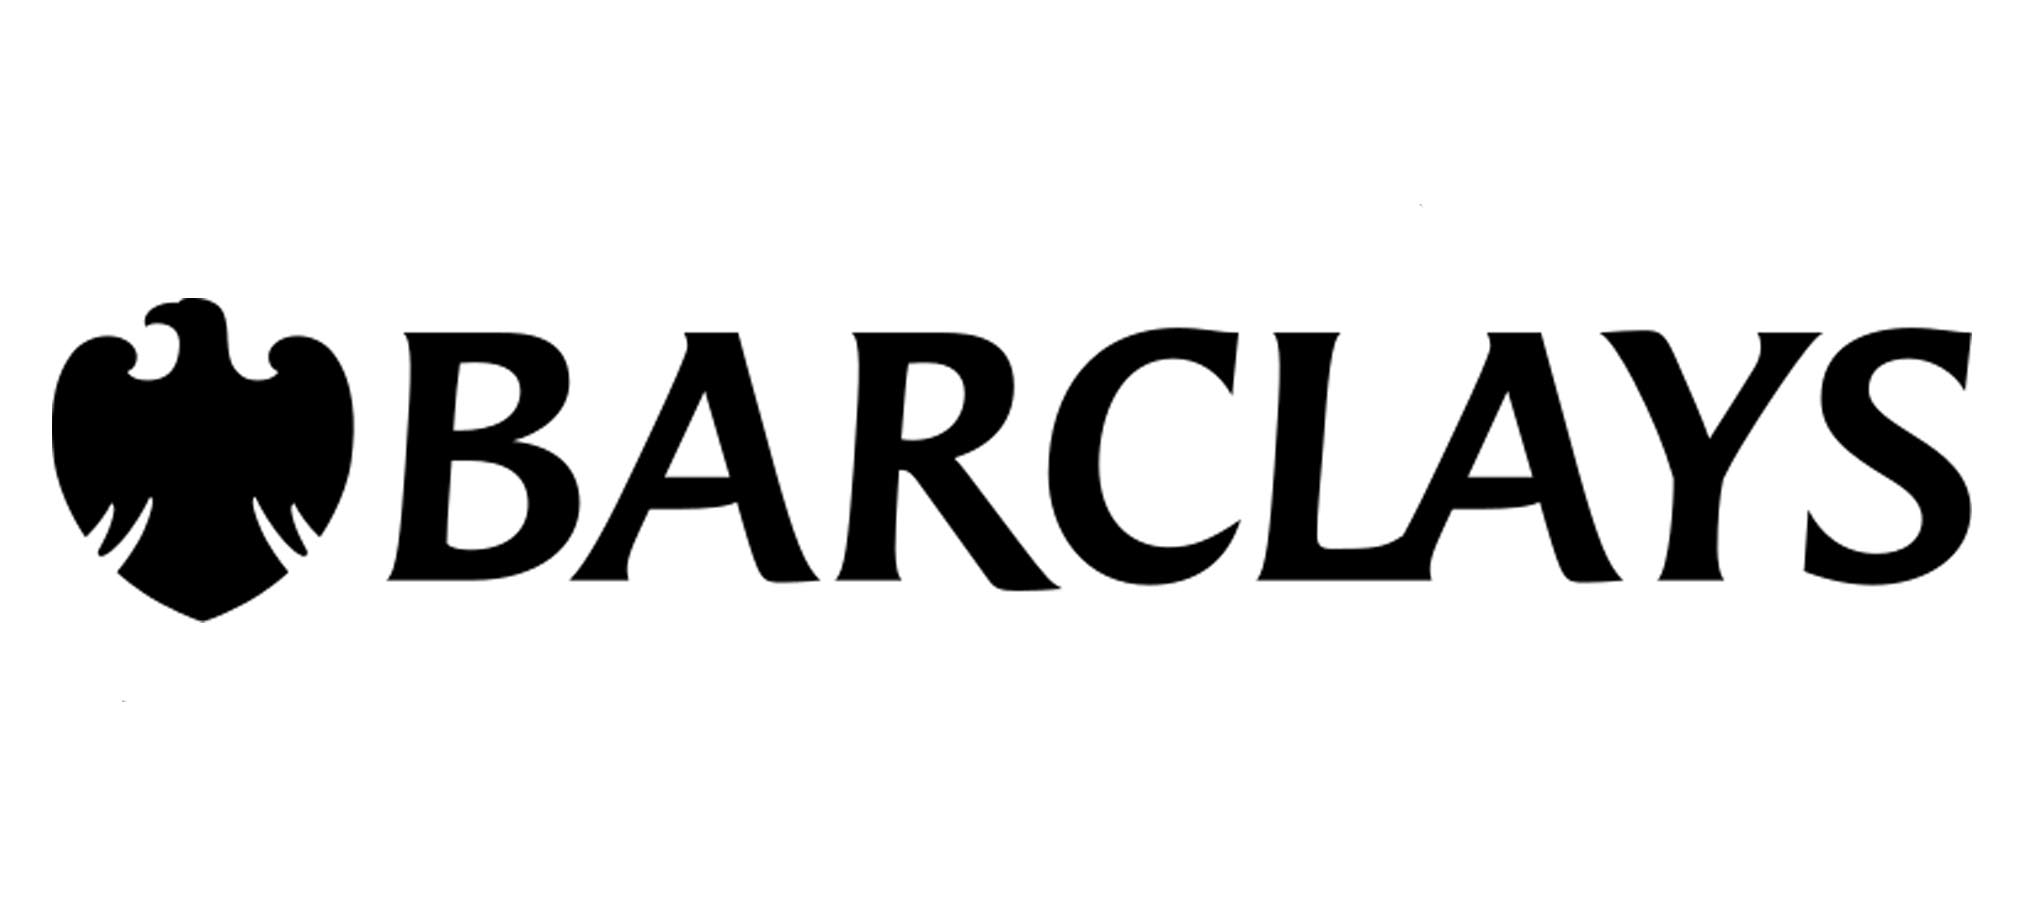 Barcklays